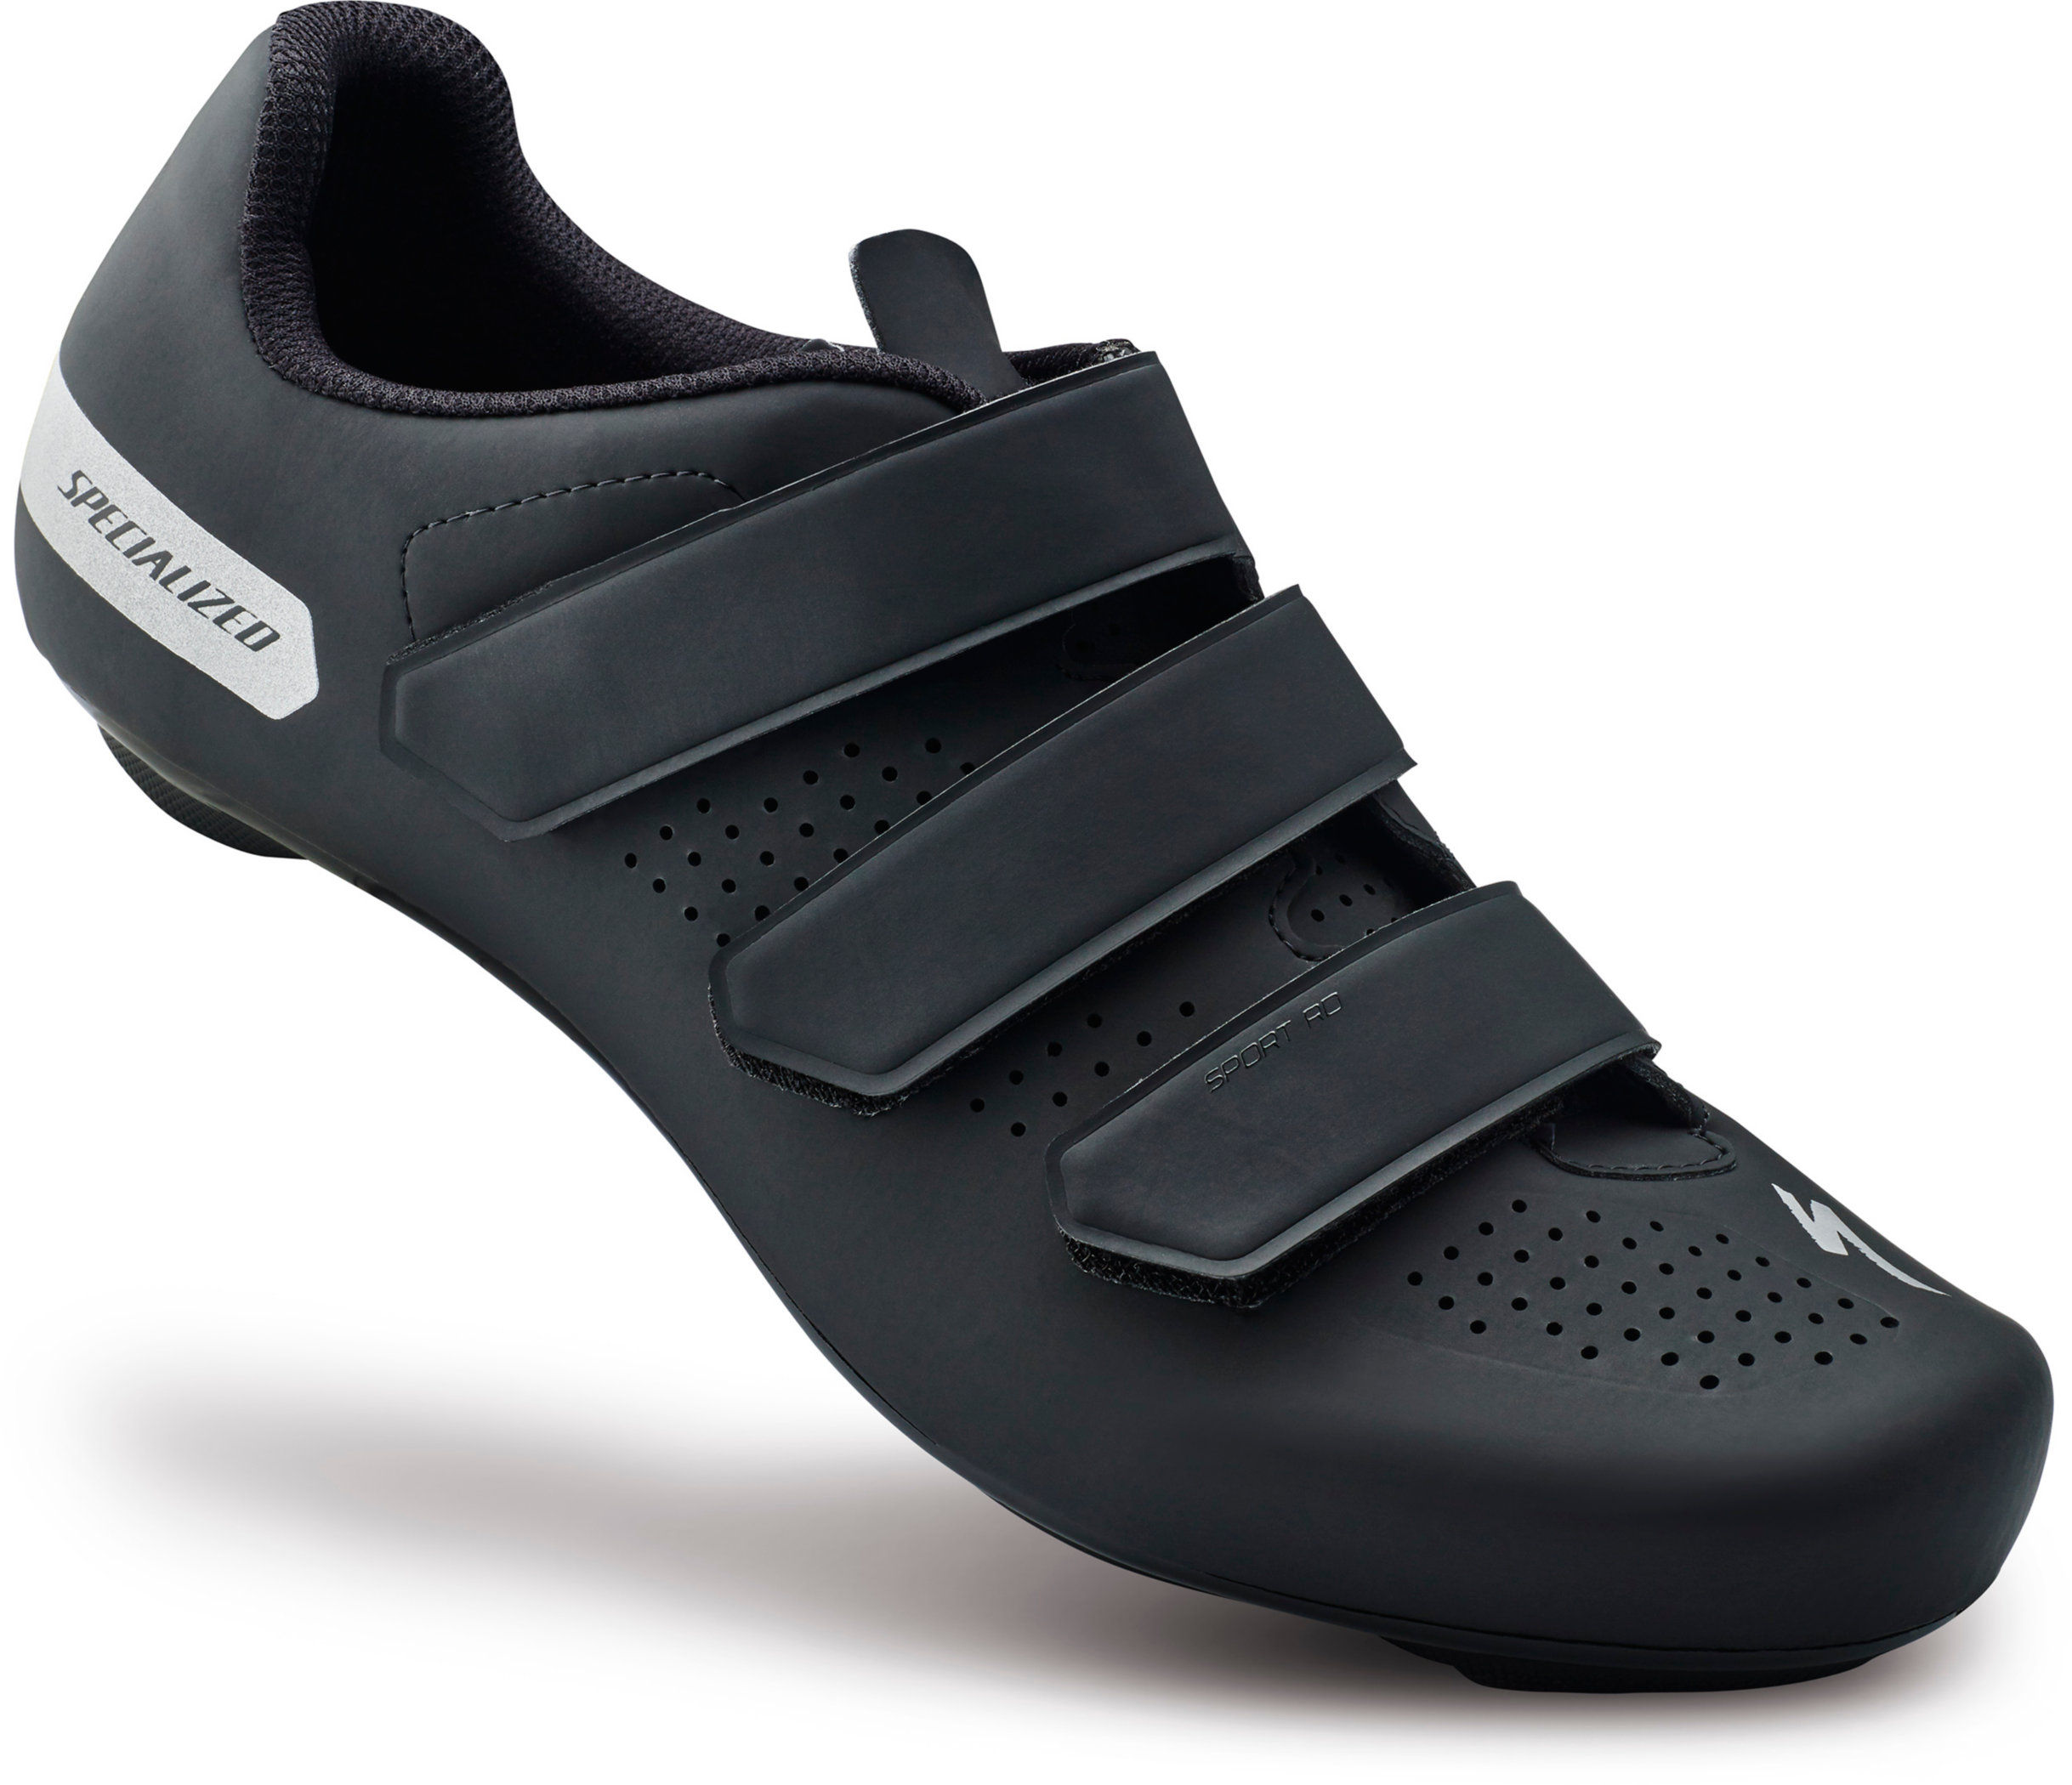 SPECIALIZED SPORT RD SHOE BLK 41/8 - Alpha Bikes